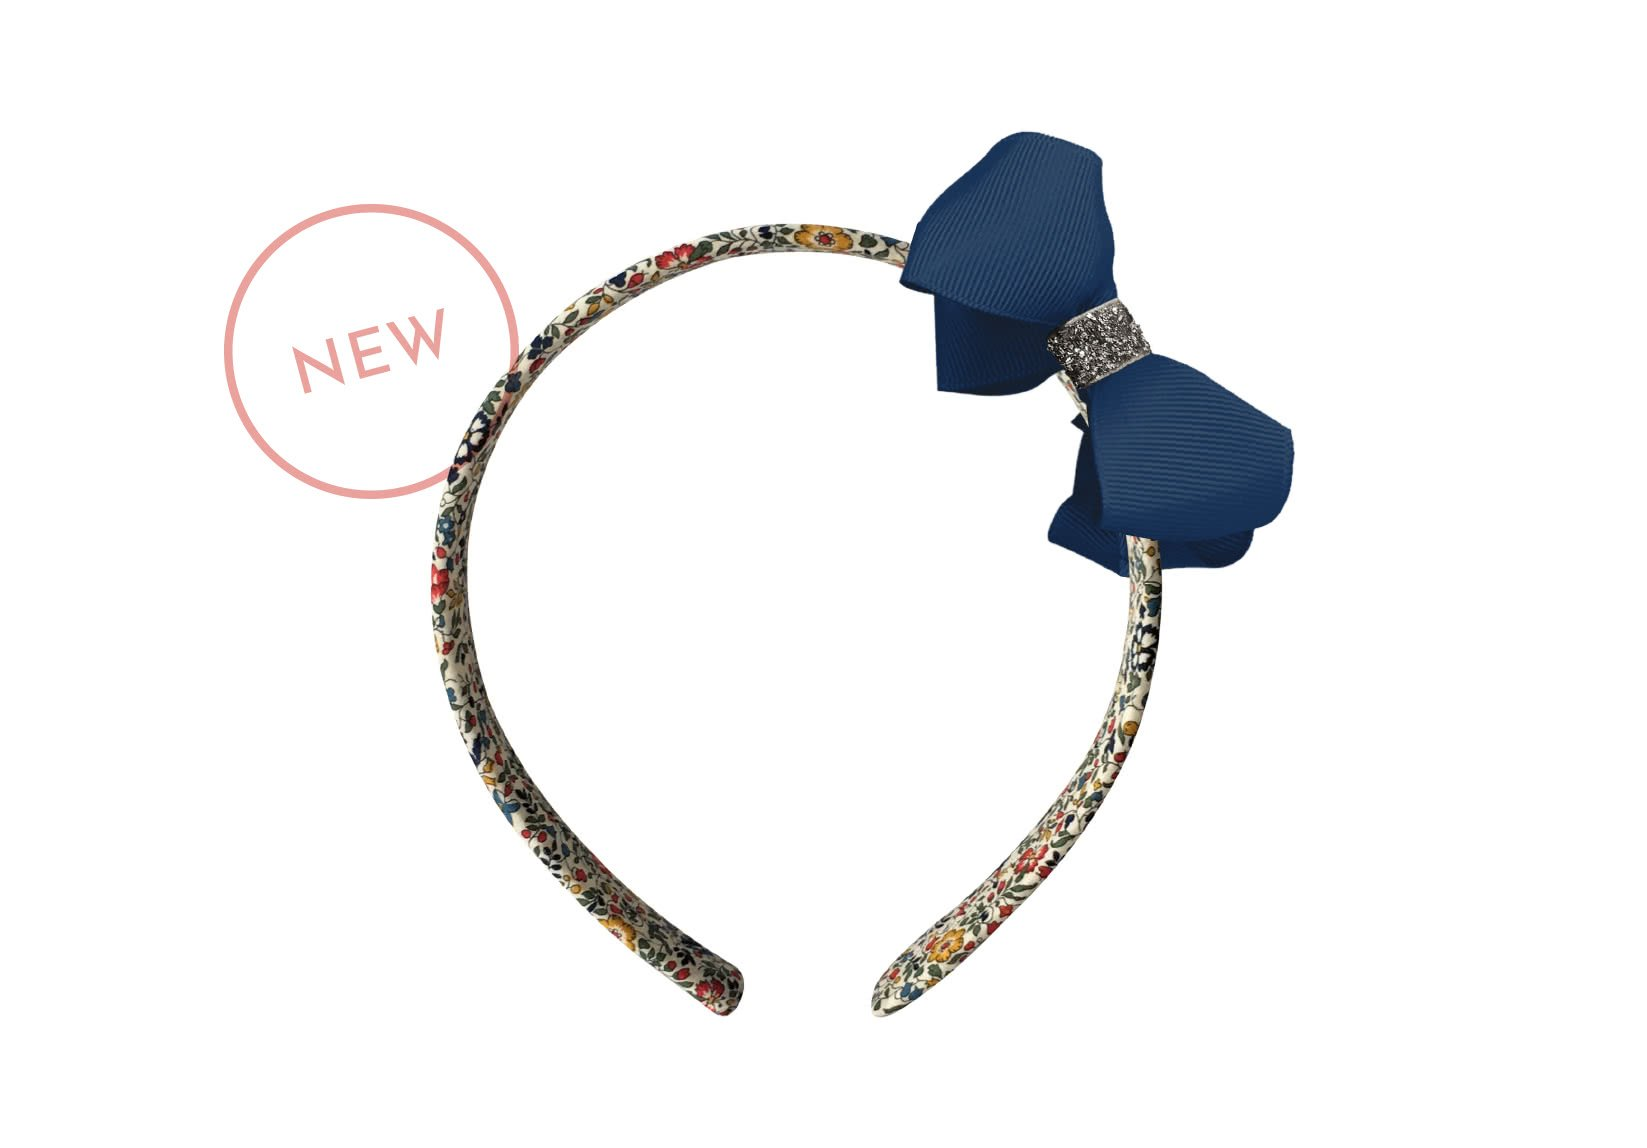 Liberty Hairband – Medium Grosgrain Boutique Bow with Silver Middle